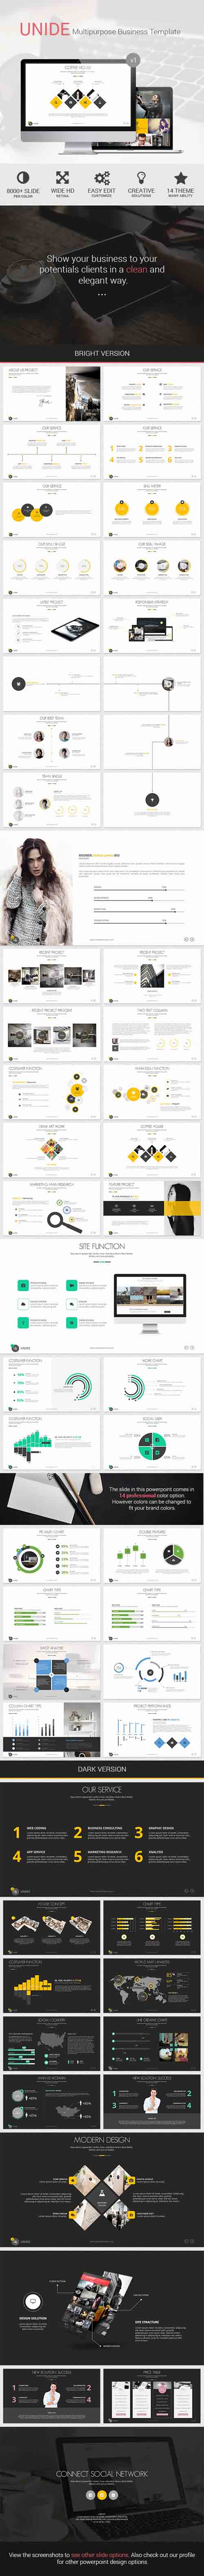 UNIDE - Powerpoint Presentation Template 8586768